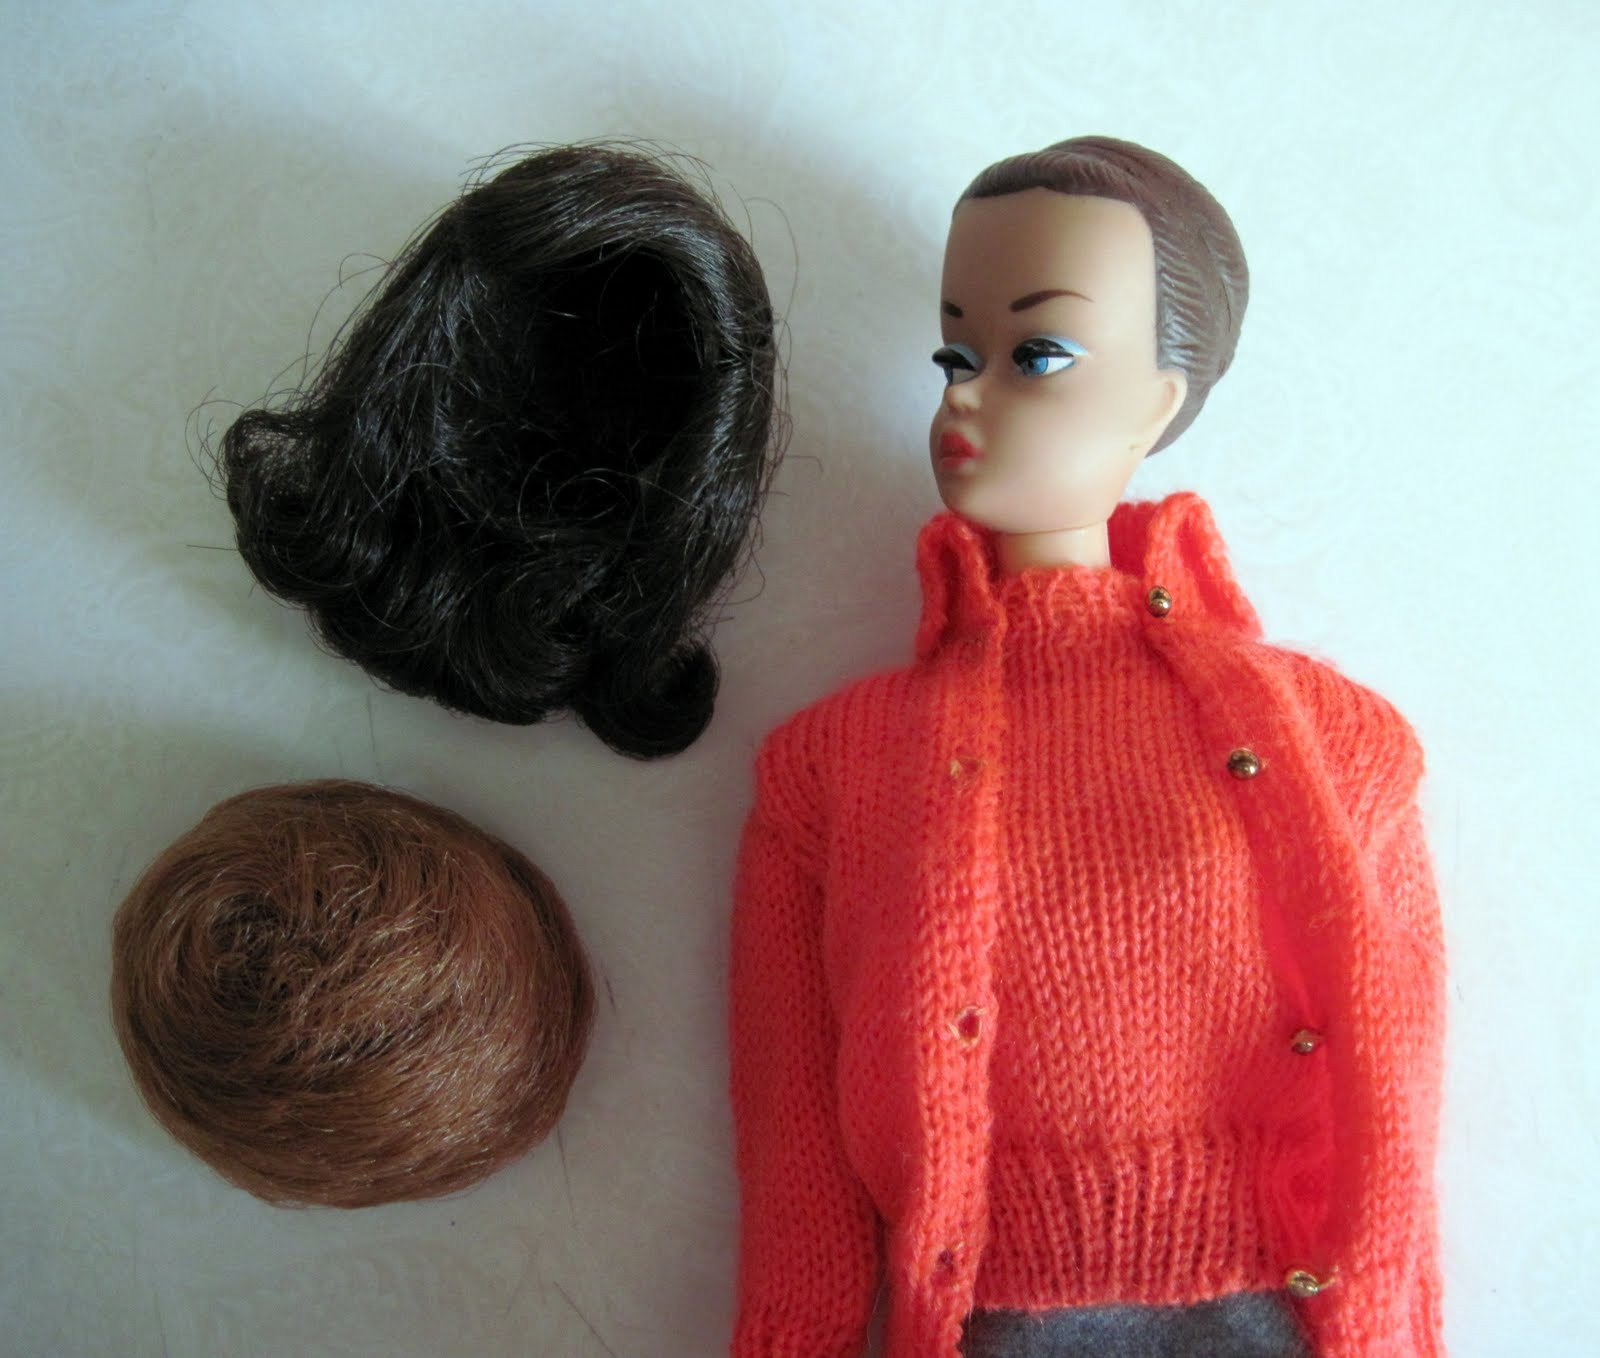 With vintage barbie wigs